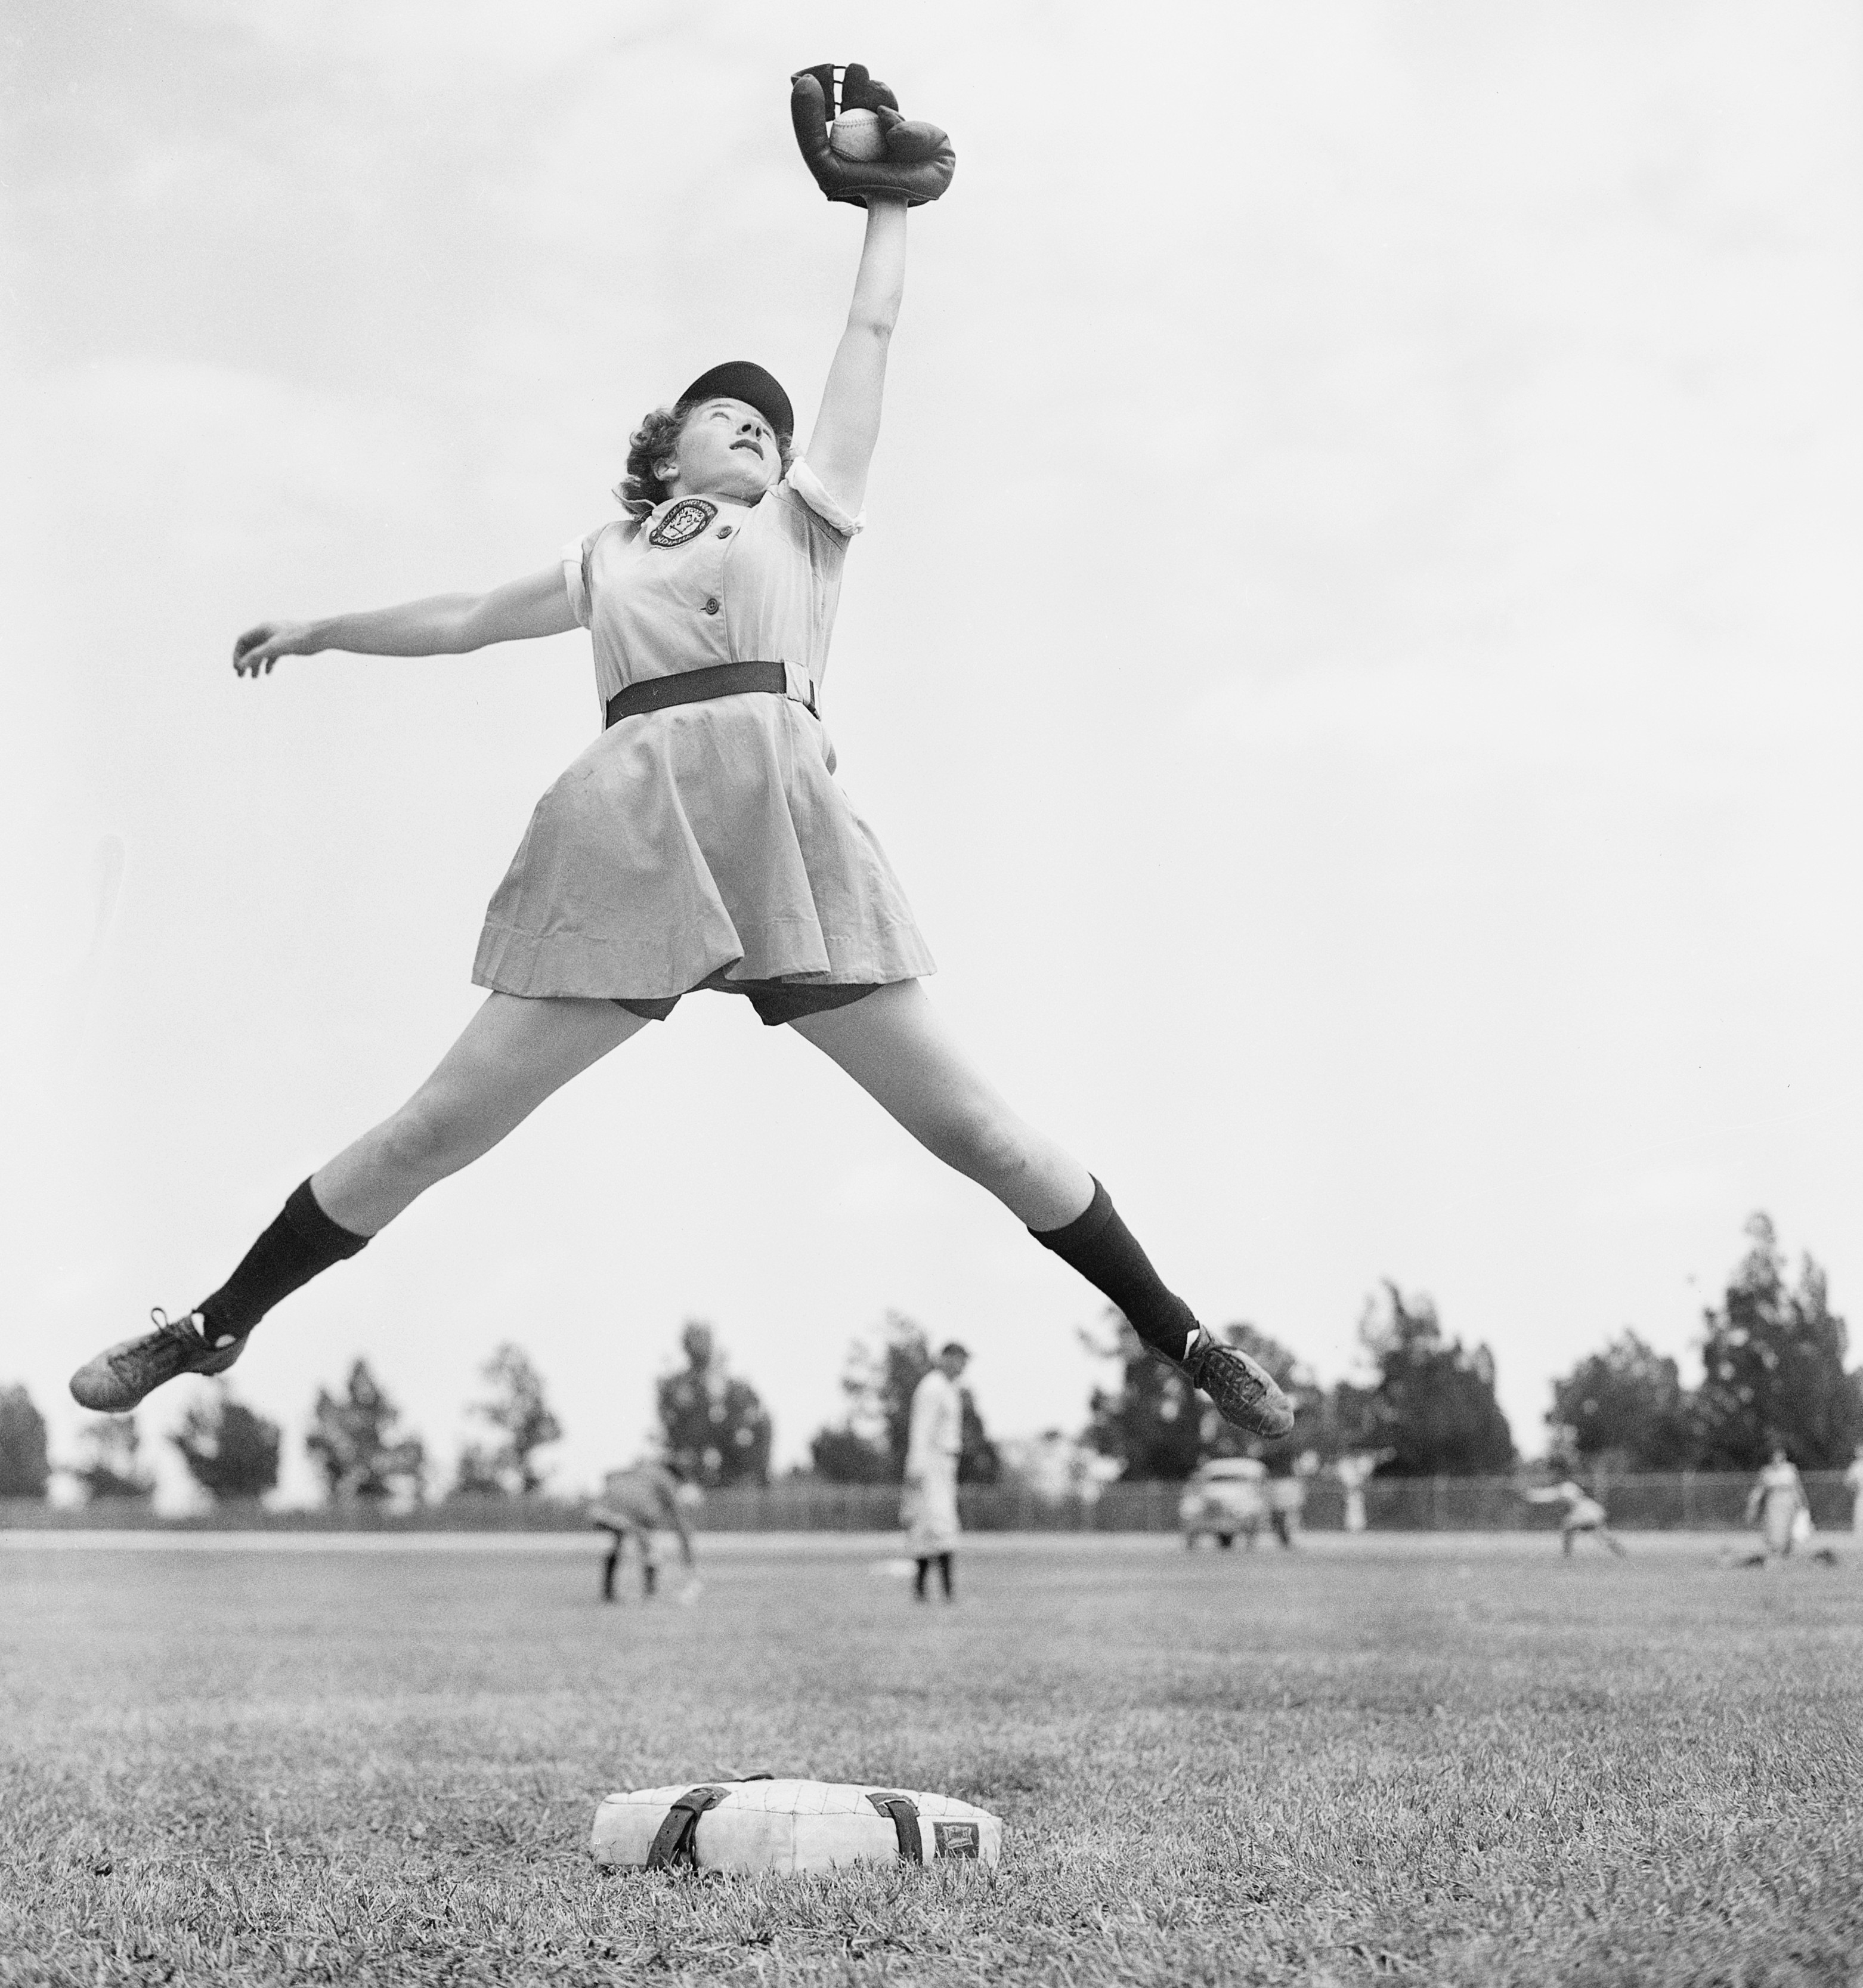 history of women in sport The 1920's was a decade in which amateur sports blossomed primarily due to press and radio coverage one controversy that arose was the role of women in sports the vice president of the national amateur athletic federation, lou hoover, organized a conference to address this controversy the .